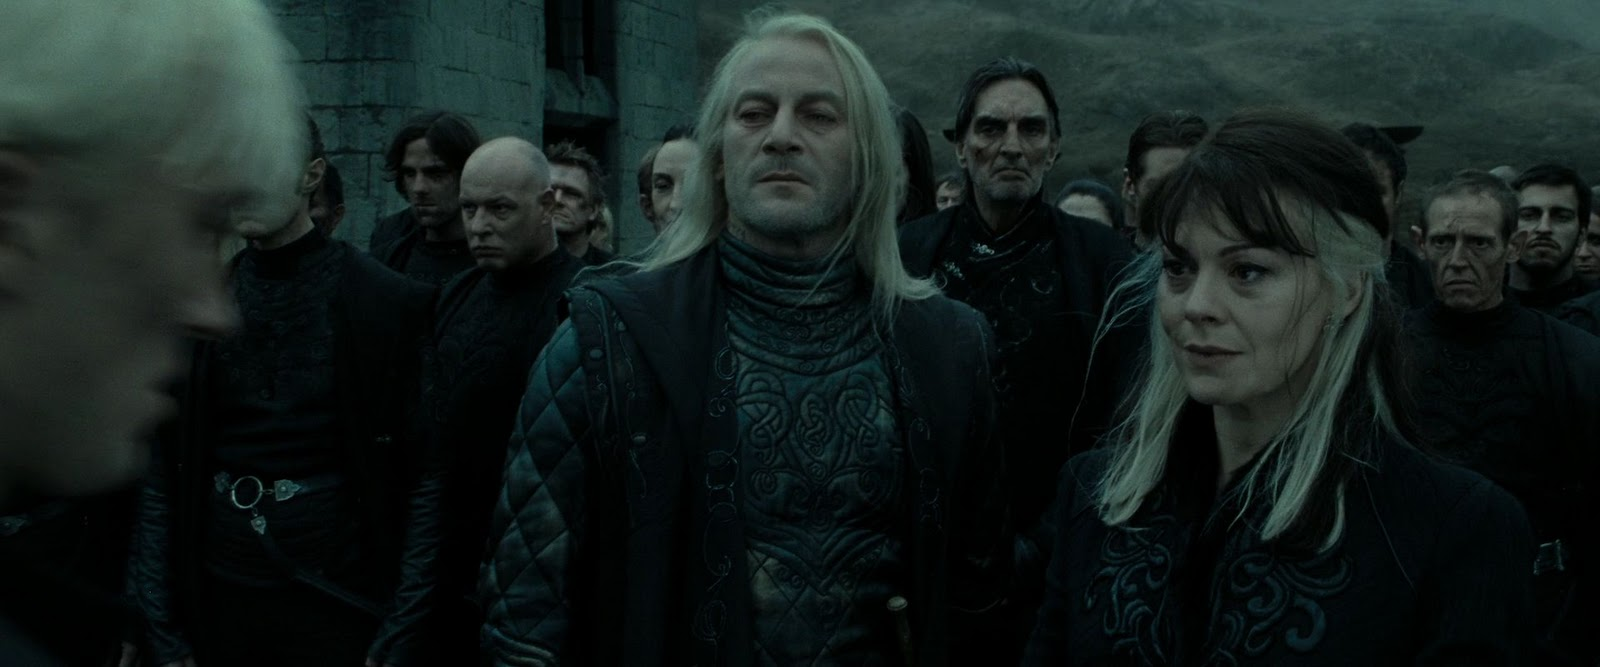 Harry potter and the deathly hallows part 2 malfoy s family reunited